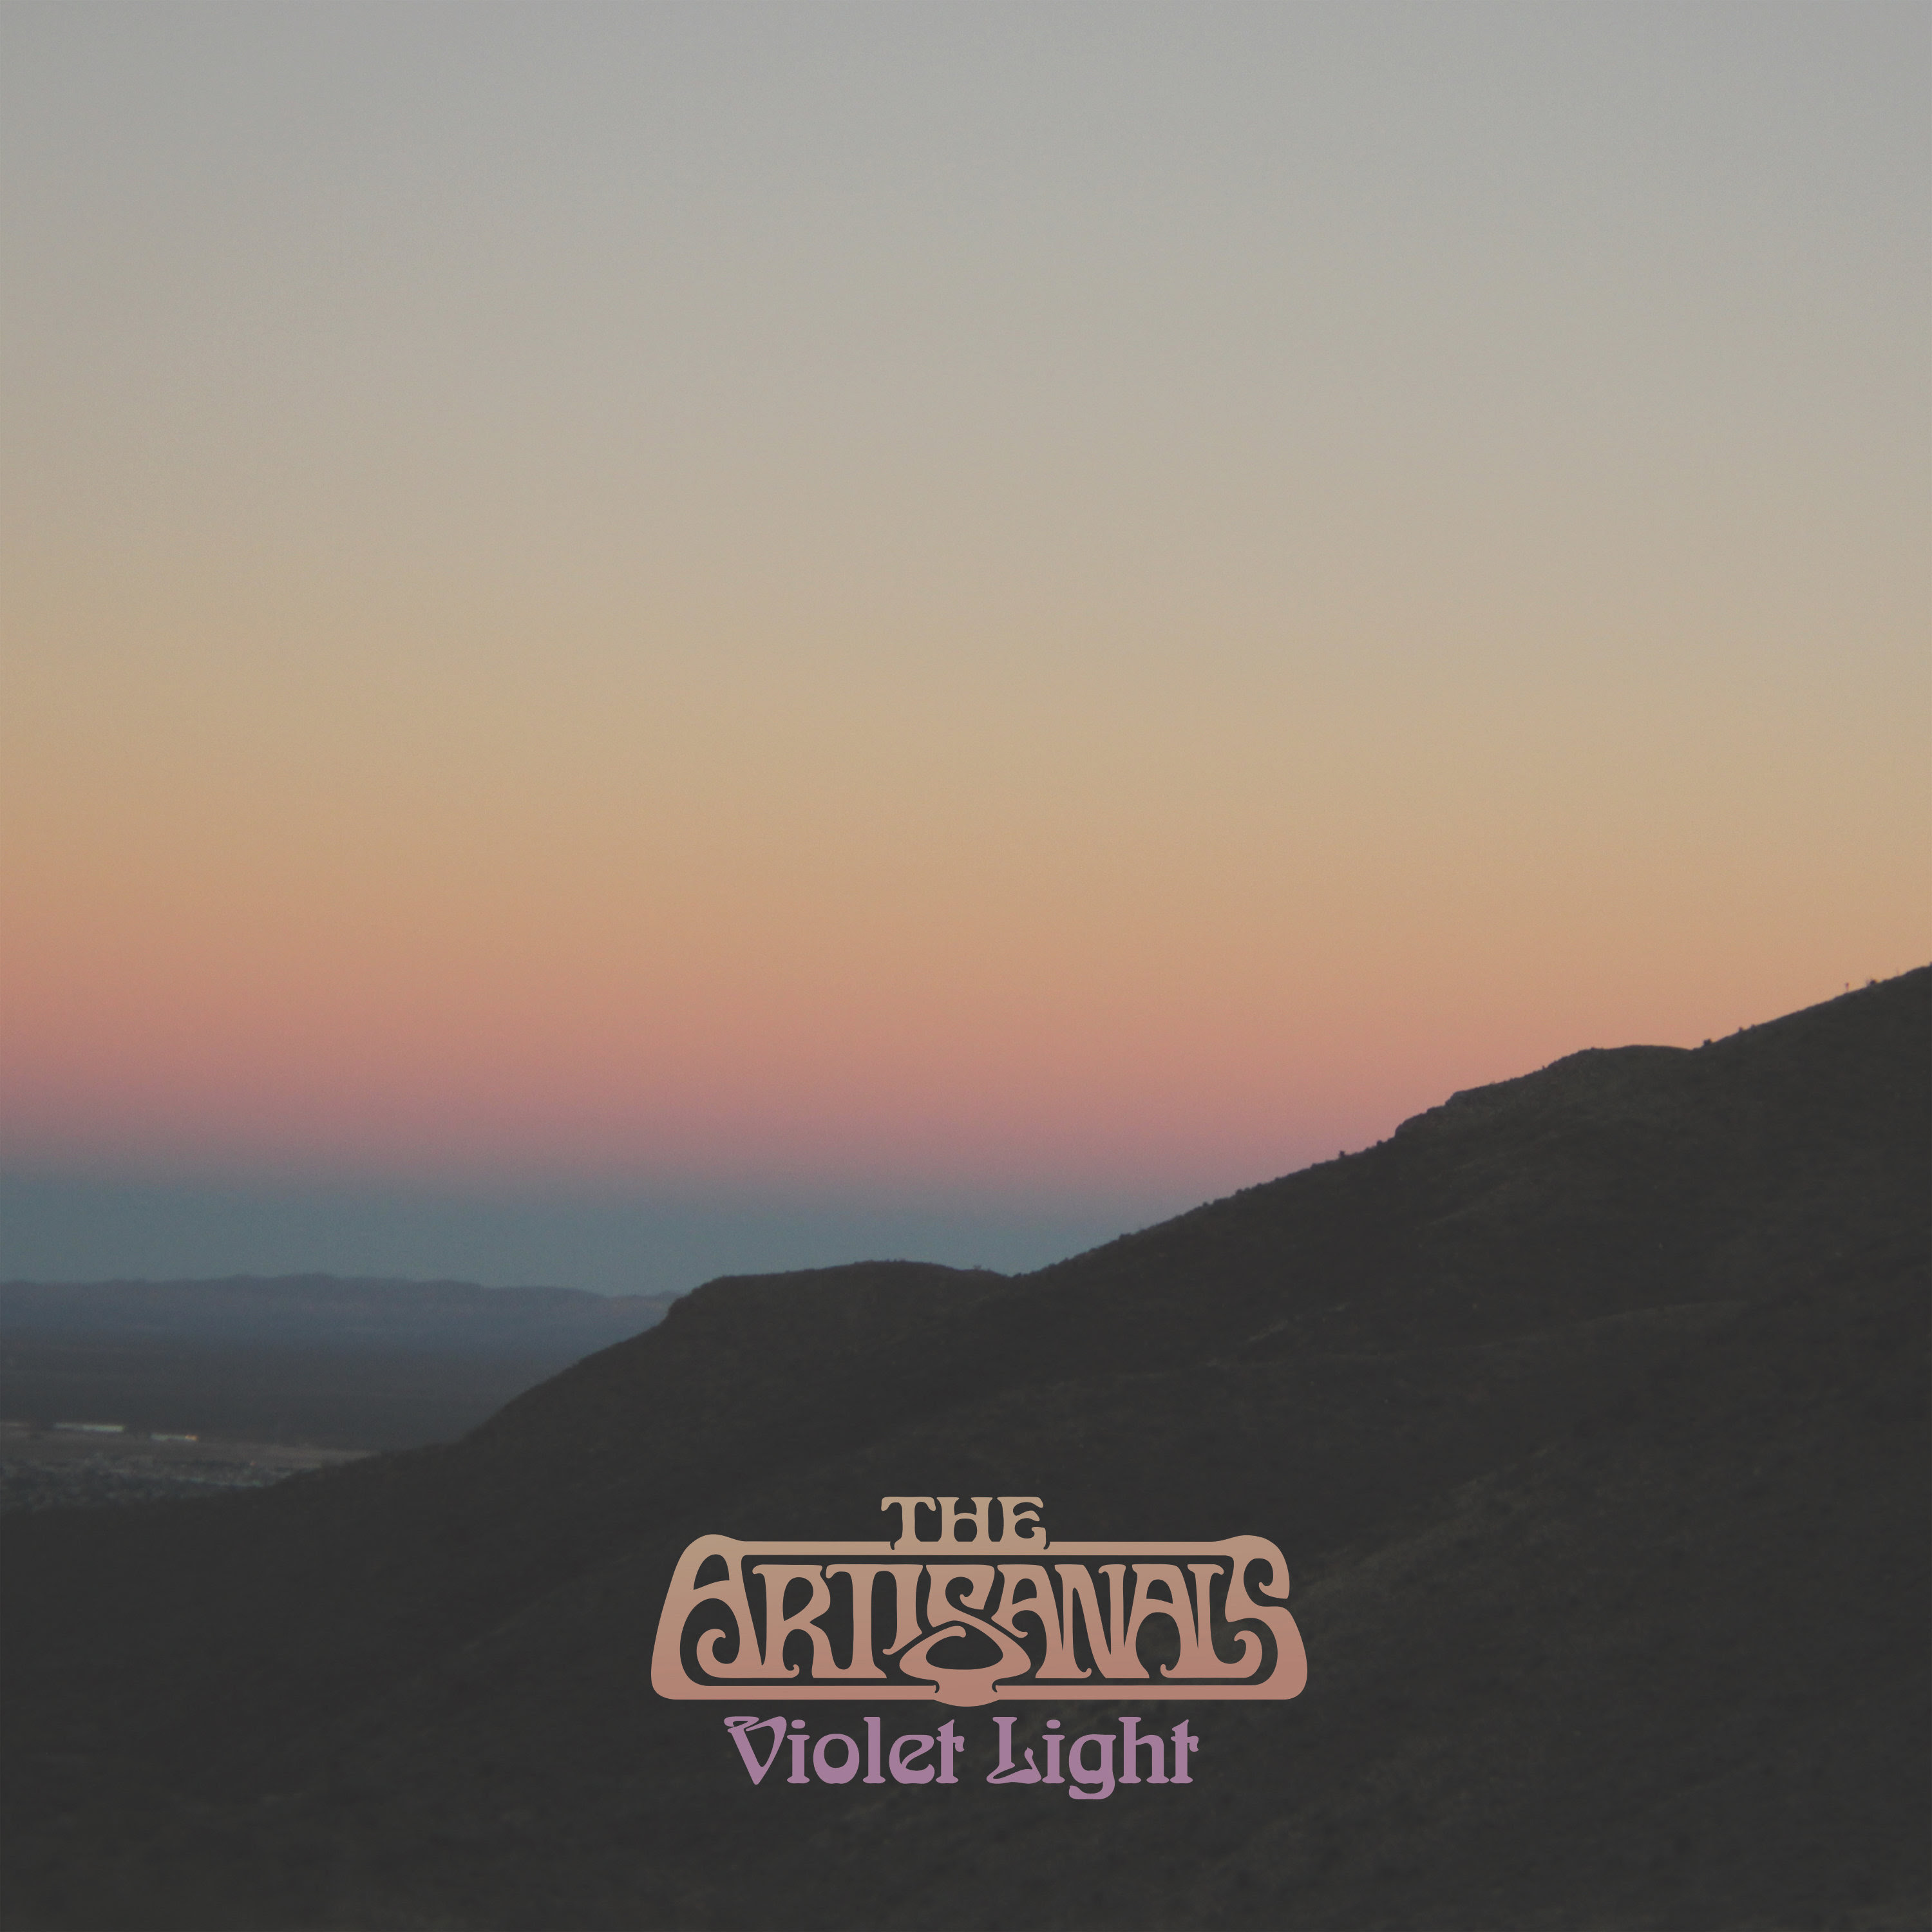 The Artisanals: Violet Light